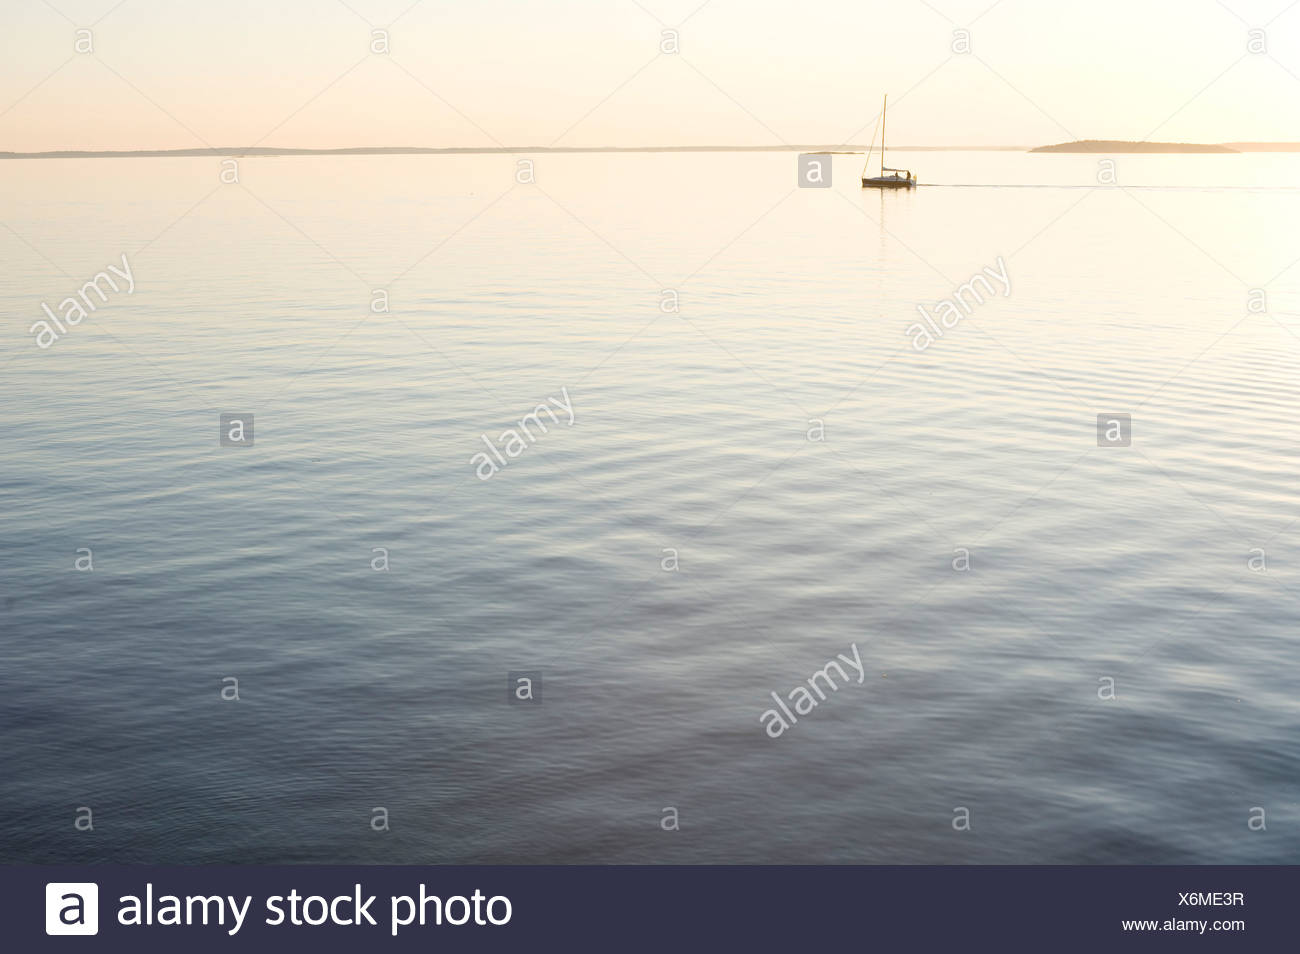 Lonely boat by the horizon - Stock Image